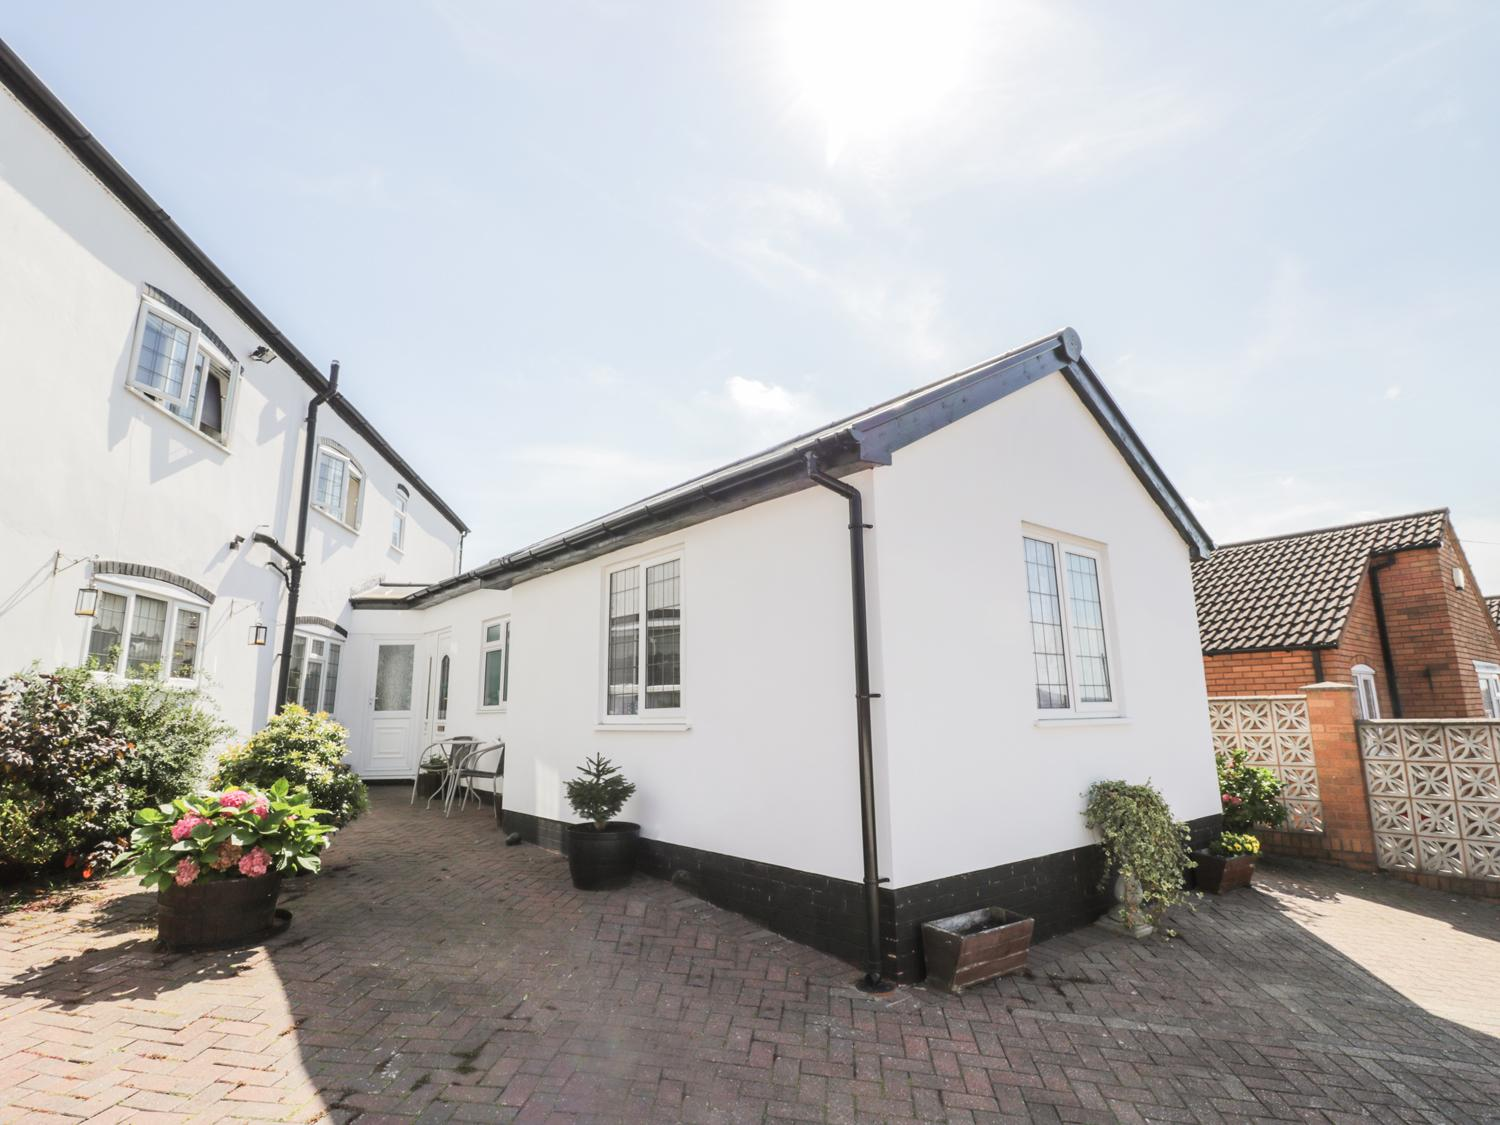 Little White Cottage, Brierley Hill, Worcestershire